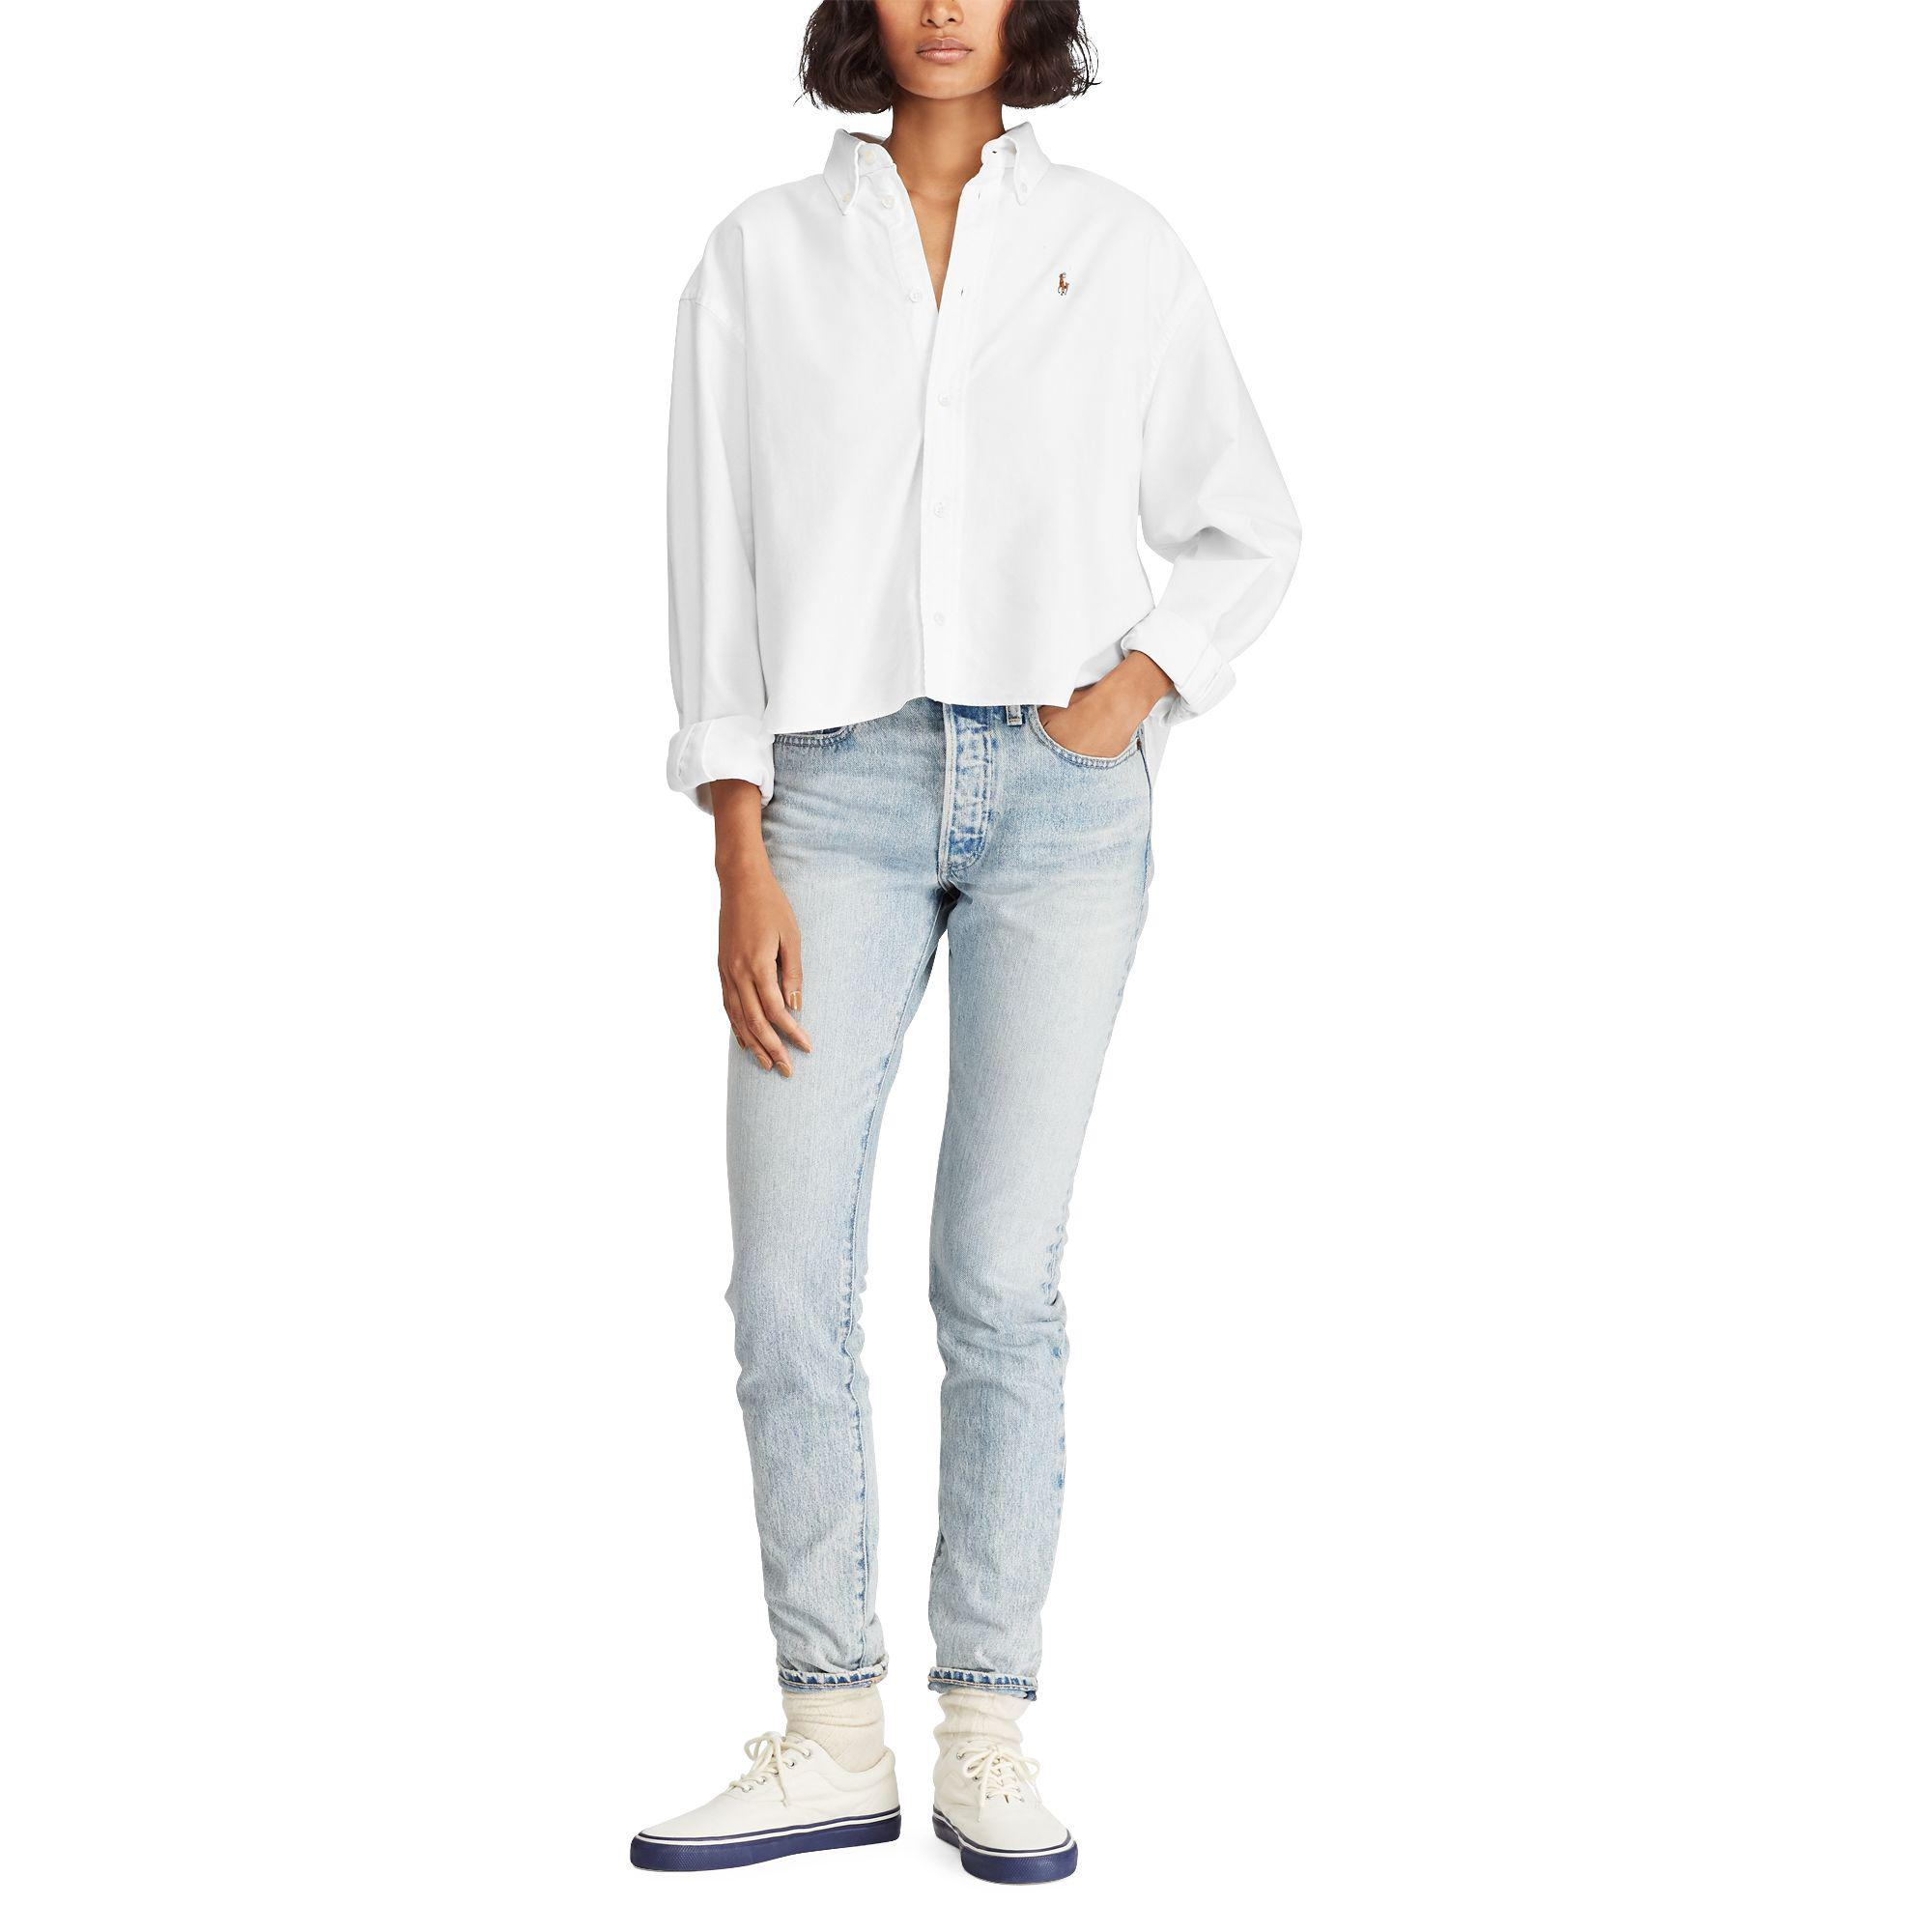 87881d83c1797 Lyst - Polo Ralph Lauren Cropped Oxford Shirt in White